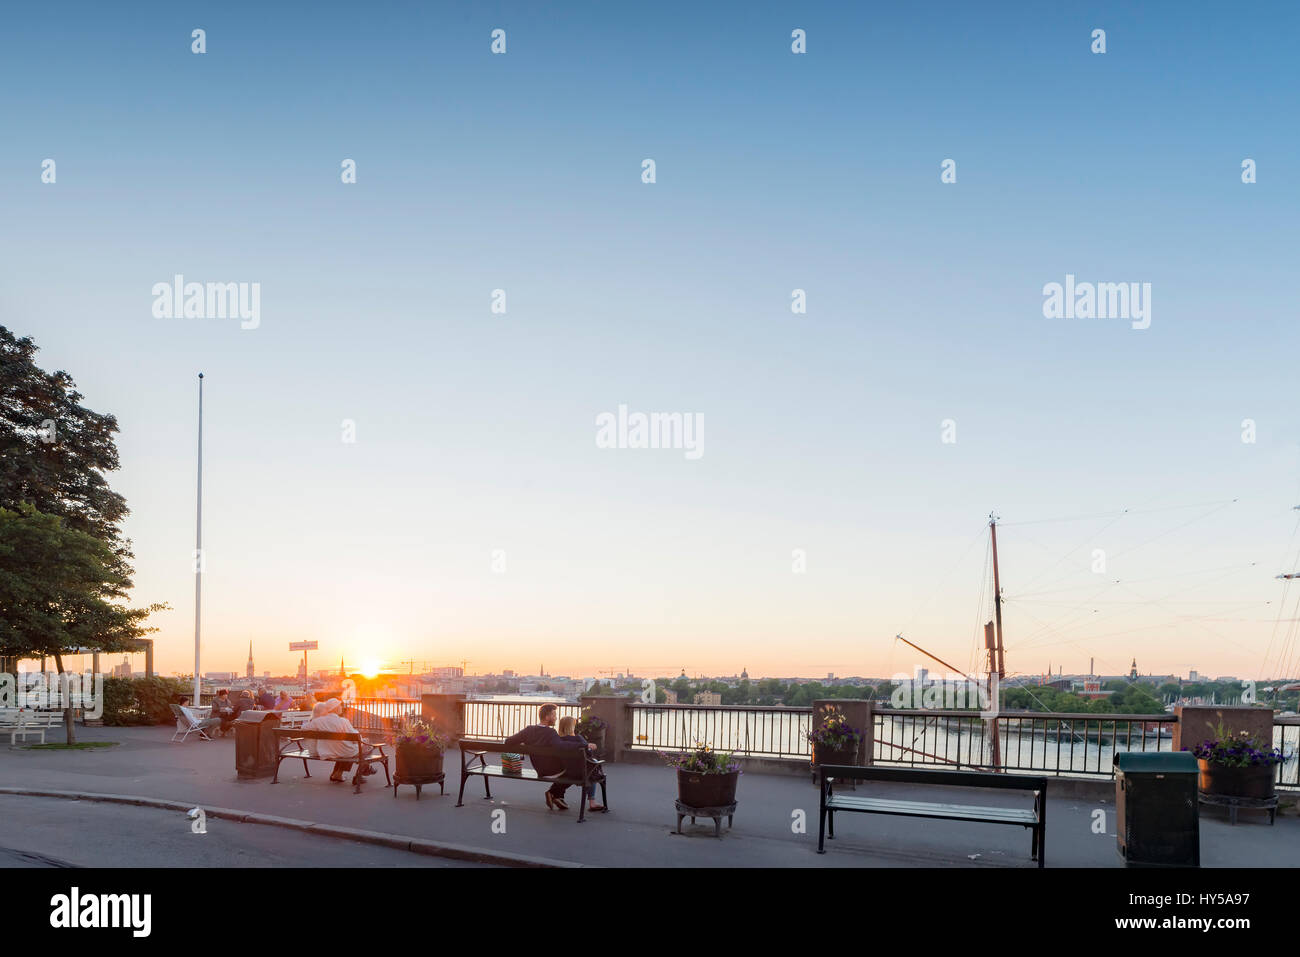 Sweden, Stockholm, Sverige, Sodermalm, City view with people sitting on benches - Stock Image